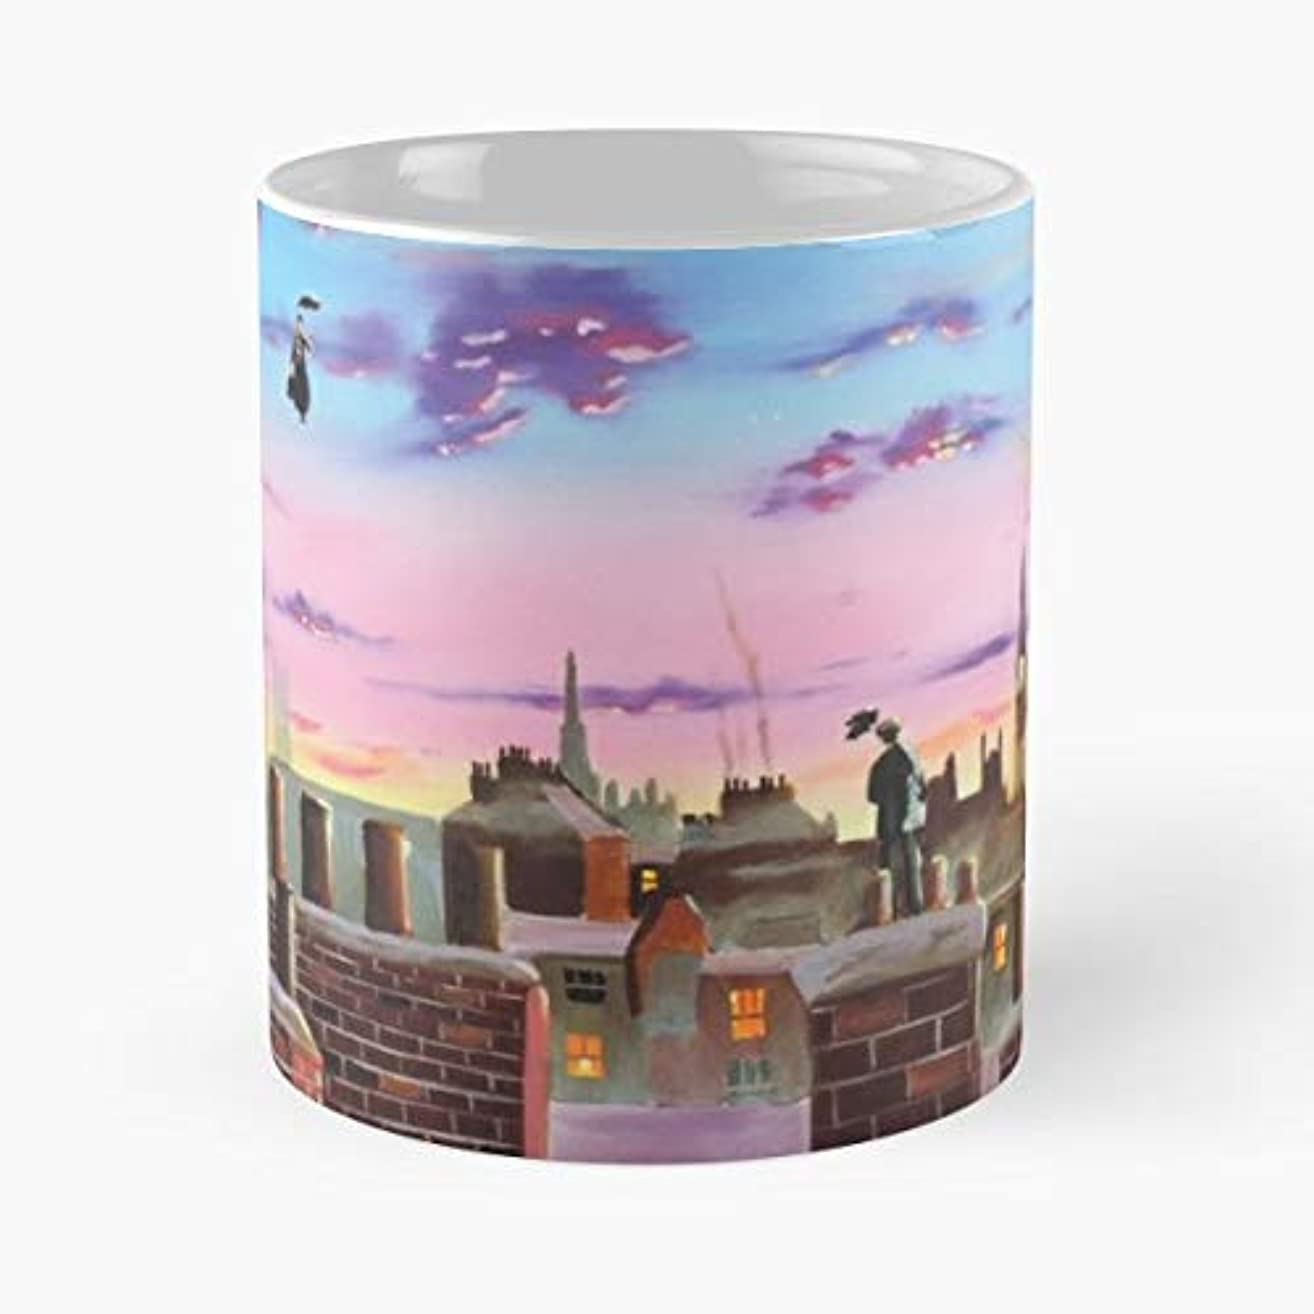 Mary Poppins Gordon Bruce London Gordonbruceart - Coffee Mugs Unique Ceramic Novelty Cup For Holiday Days 11 Oz.